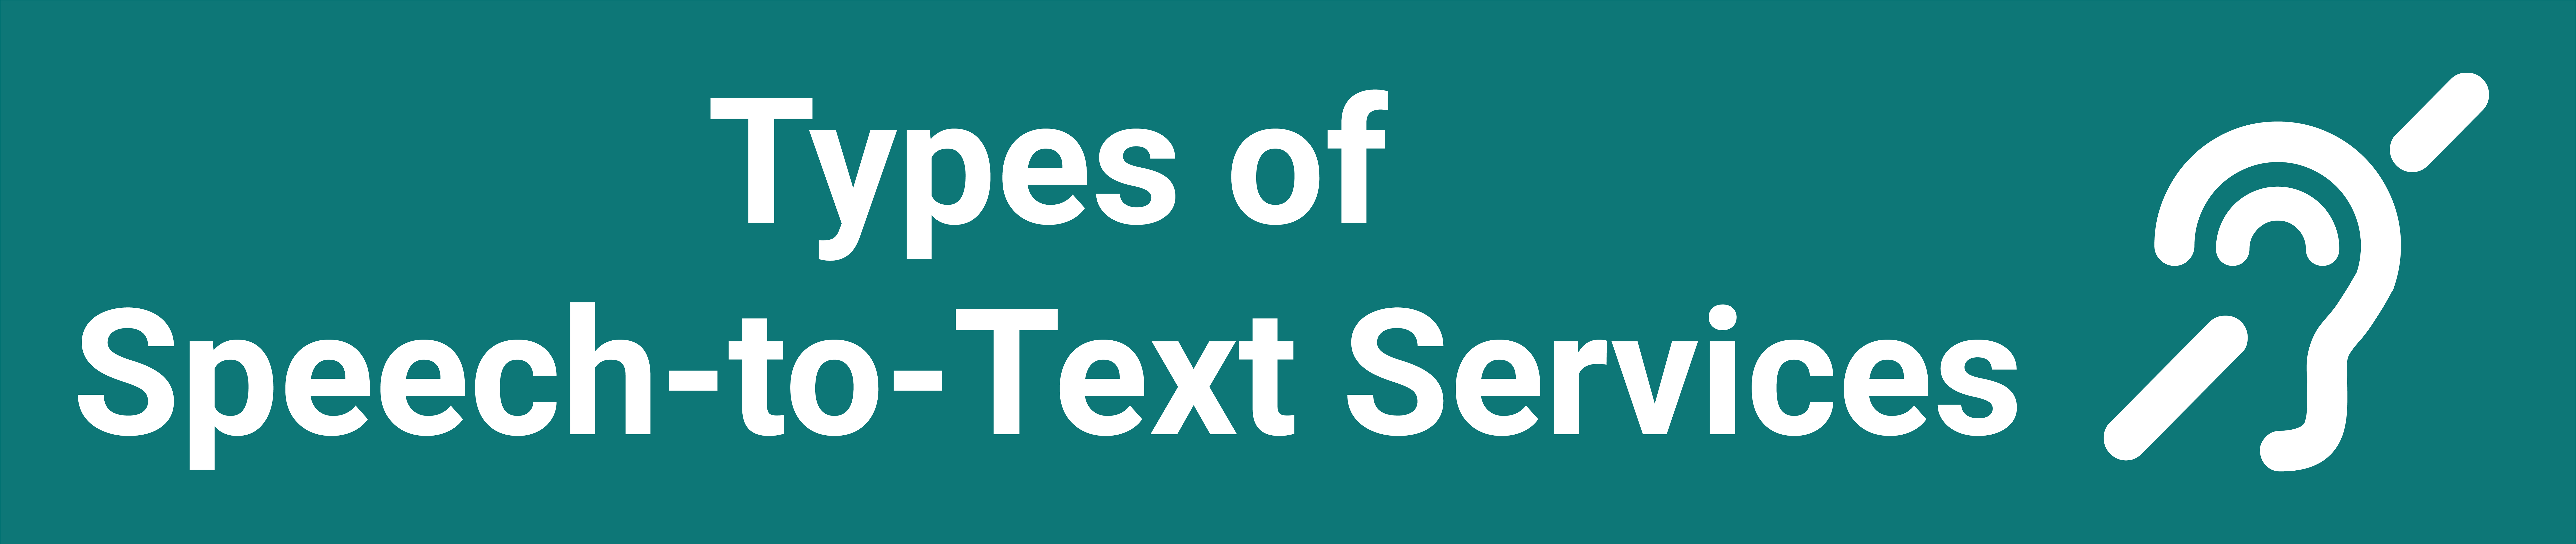 Teal background with an icon of a speech bubble and text. Text: Types of STTS